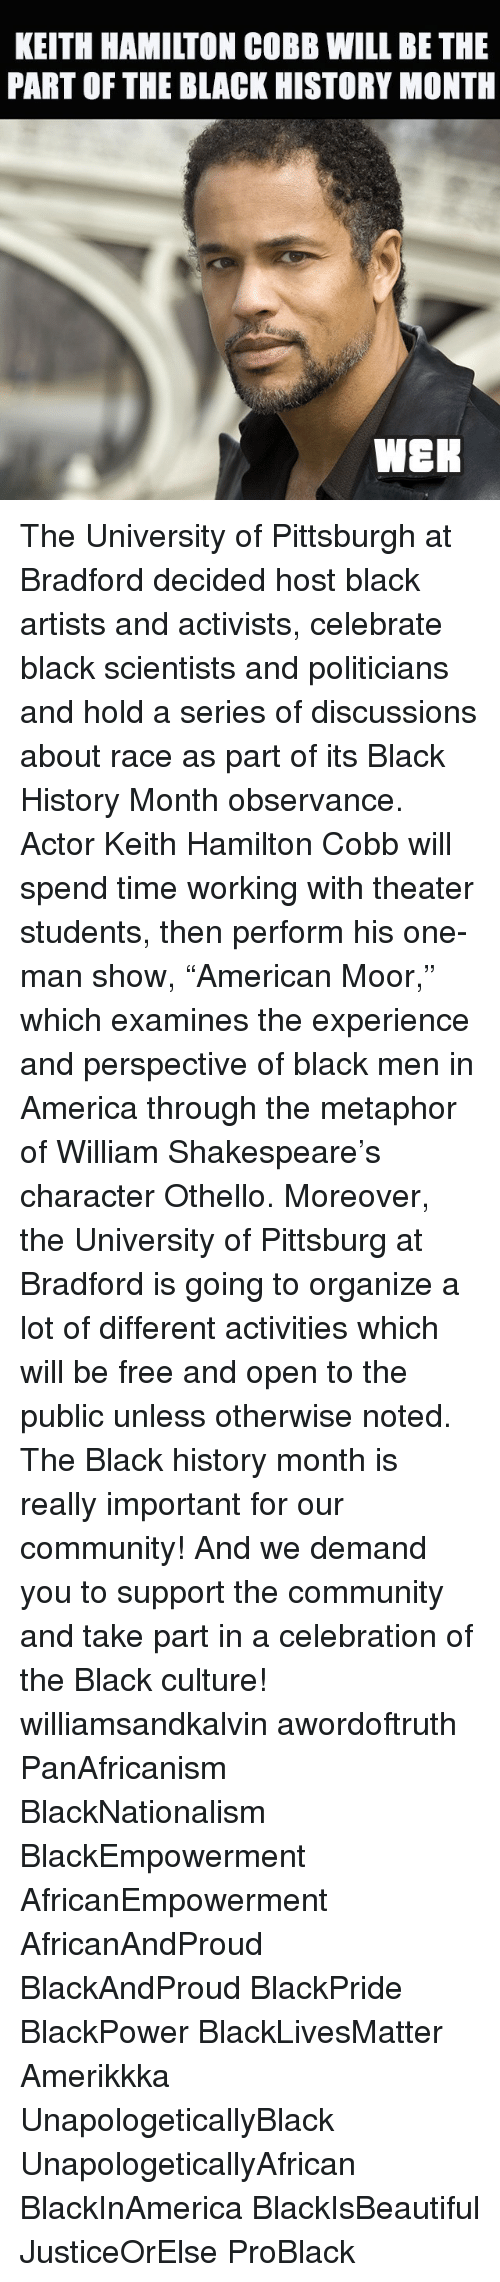 """Black Scientist: KEITH HAMILTON COBB WILL BETHE  PART OF THE BLACK HISTORY MONTH  WEEK The University of Pittsburgh at Bradford decided host black artists and activists, celebrate black scientists and politicians and hold a series of discussions about race as part of its Black History Month observance. Actor Keith Hamilton Cobb will spend time working with theater students, then perform his one-man show, """"American Moor,"""" which examines the experience and perspective of black men in America through the metaphor of William Shakespeare's character Othello. Moreover, the University of Pittsburg at Bradford is going to organize a lot of different activities which will be free and open to the public unless otherwise noted. The Black history month is really important for our community! And we demand you to support the community and take part in a celebration of the Black culture! williamsandkalvin awordoftruth PanAfricanism BlackNationalism BlackEmpowerment AfricanEmpowerment AfricanAndProud BlackAndProud BlackPride BlackPower BlackLivesMatter Amerikkka UnapologeticallyBlack UnapologeticallyAfrican BlackInAmerica BlackIsBeautiful JusticeOrElse ProBlack"""